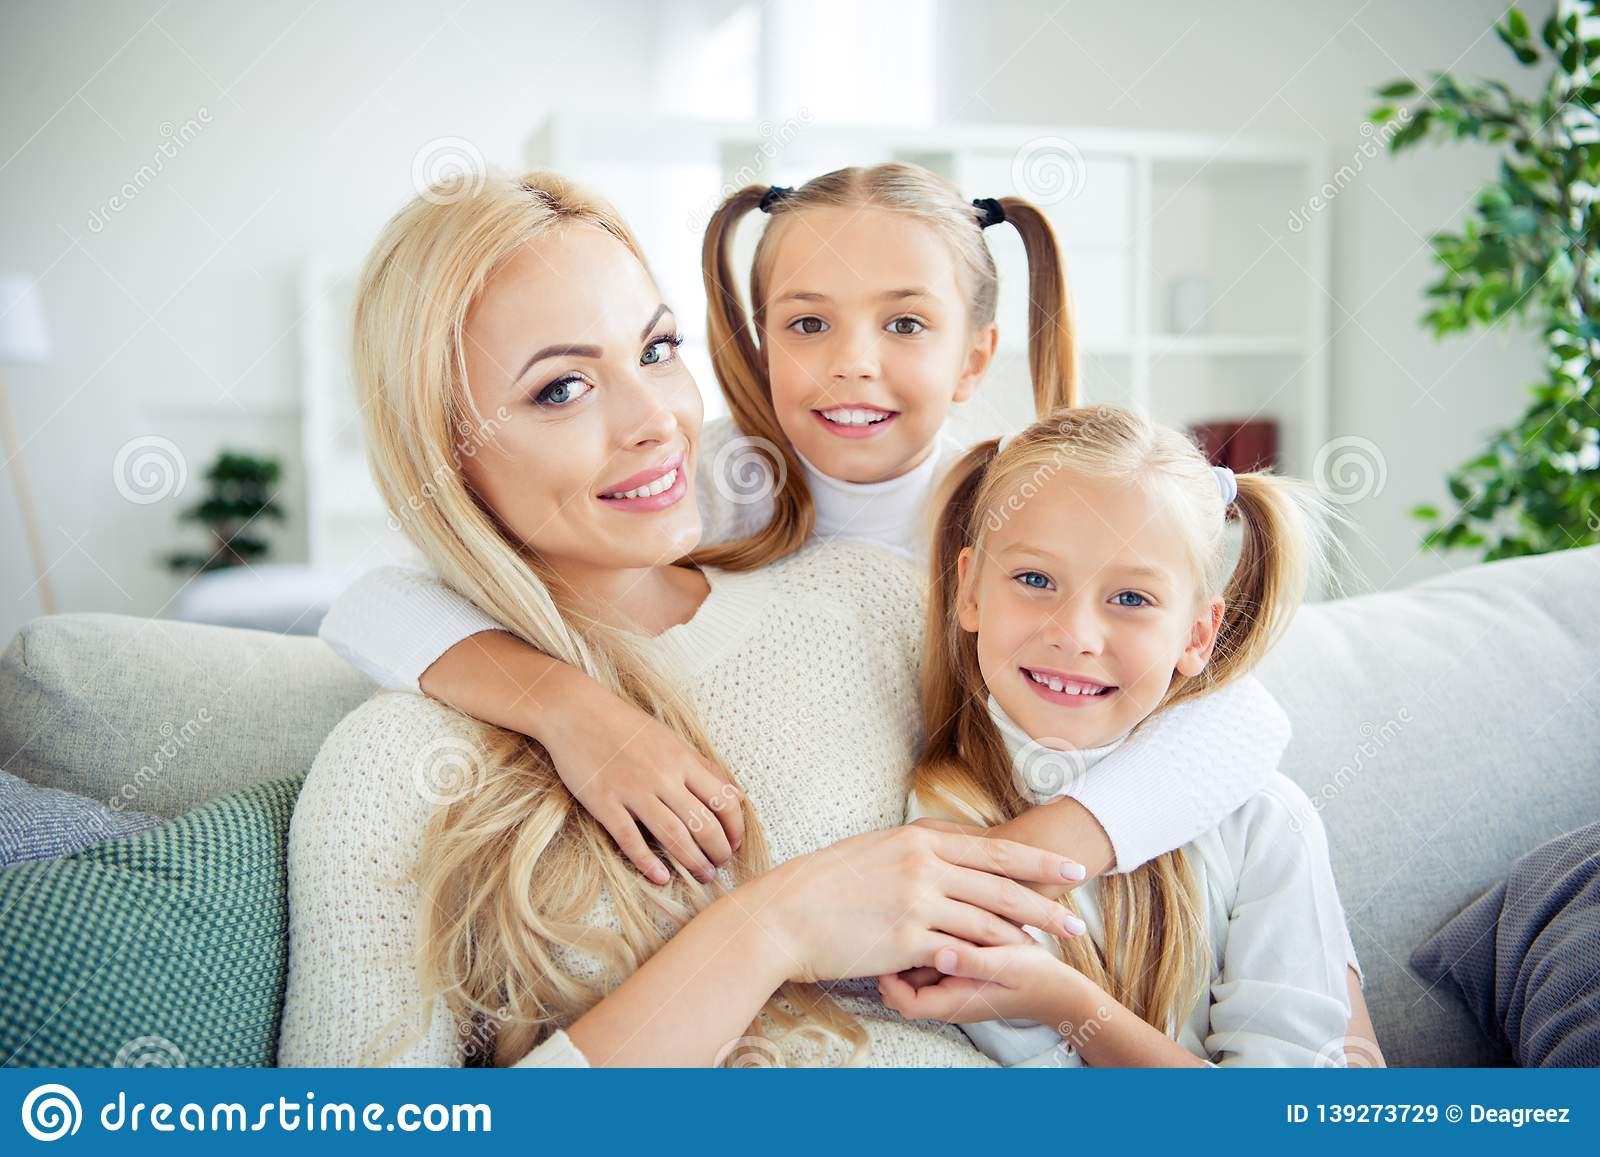 Close-up portrait of three nice cute lovely lovable attractive winsome  cheerful positive people pre-teen girls cuddling delicate mom mum mommy in  light ...